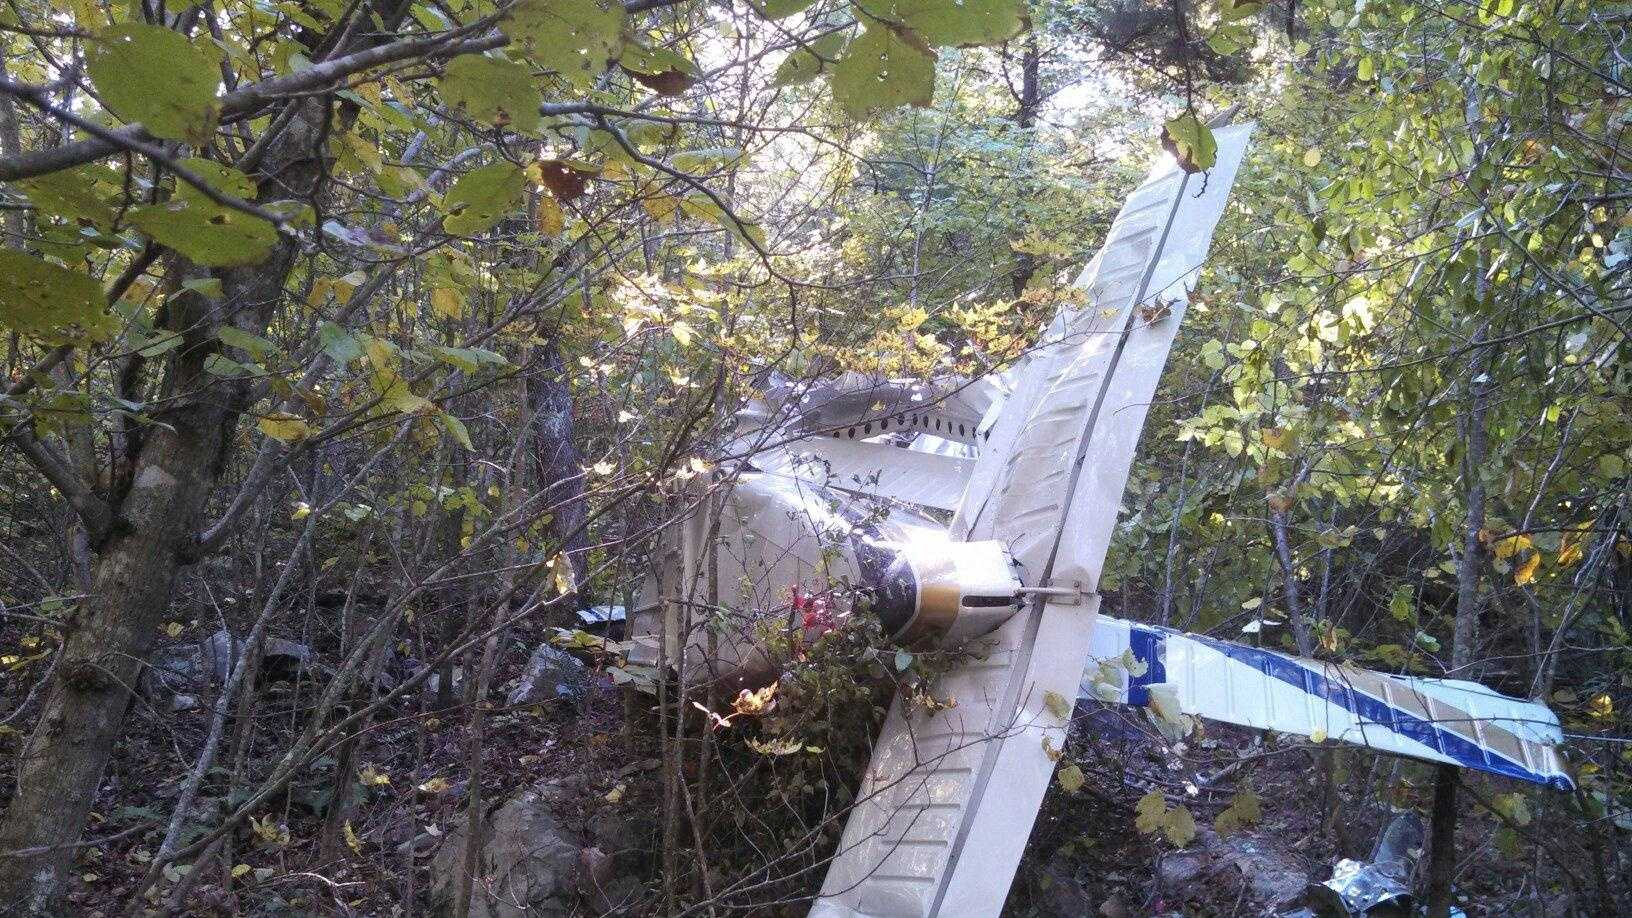 Ray Broadbent's plane was found Thursday